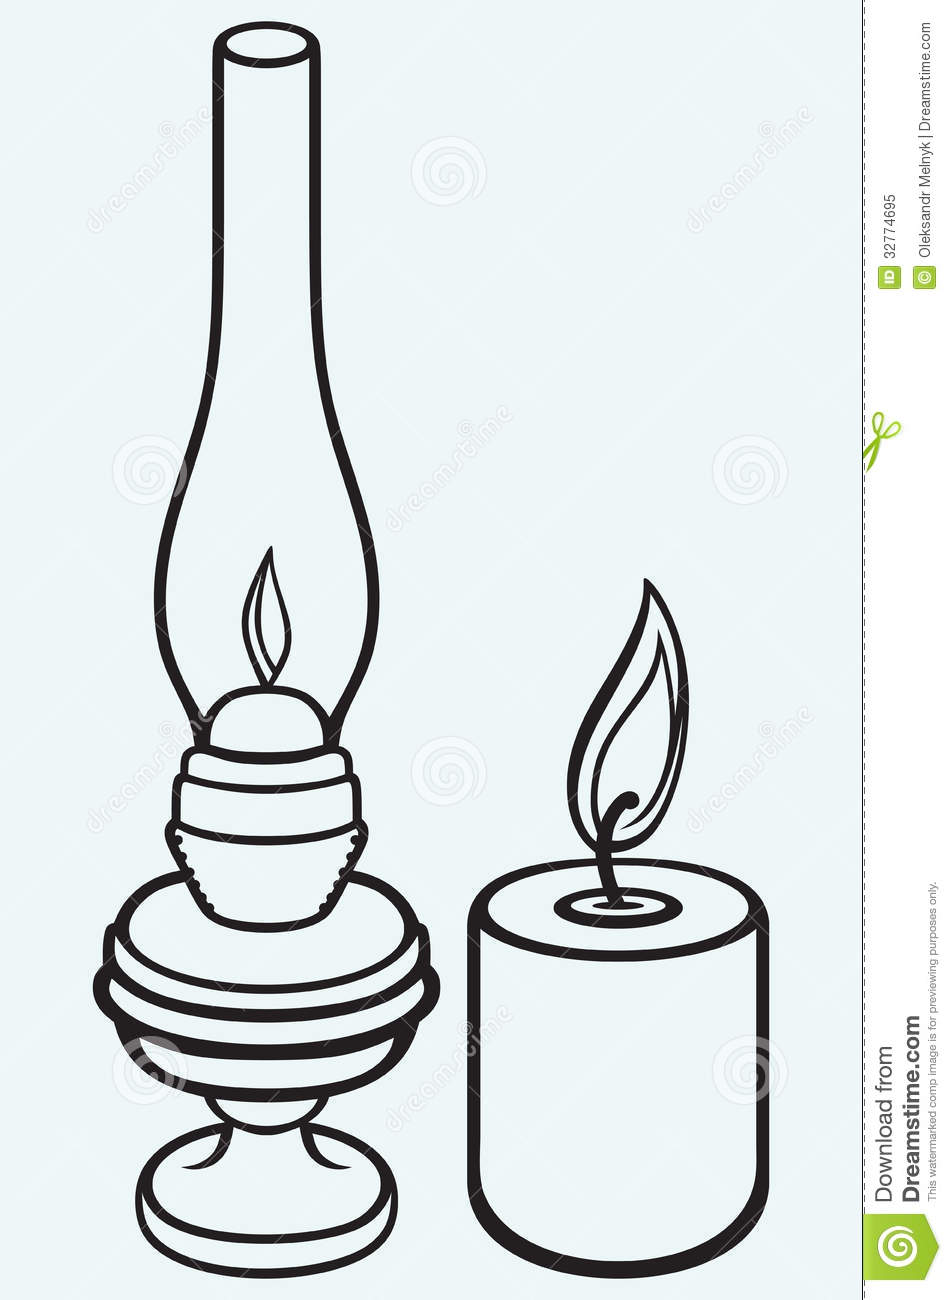 Old Oil Lamps Drawing for Oil Lamp Clip Art  197uhy